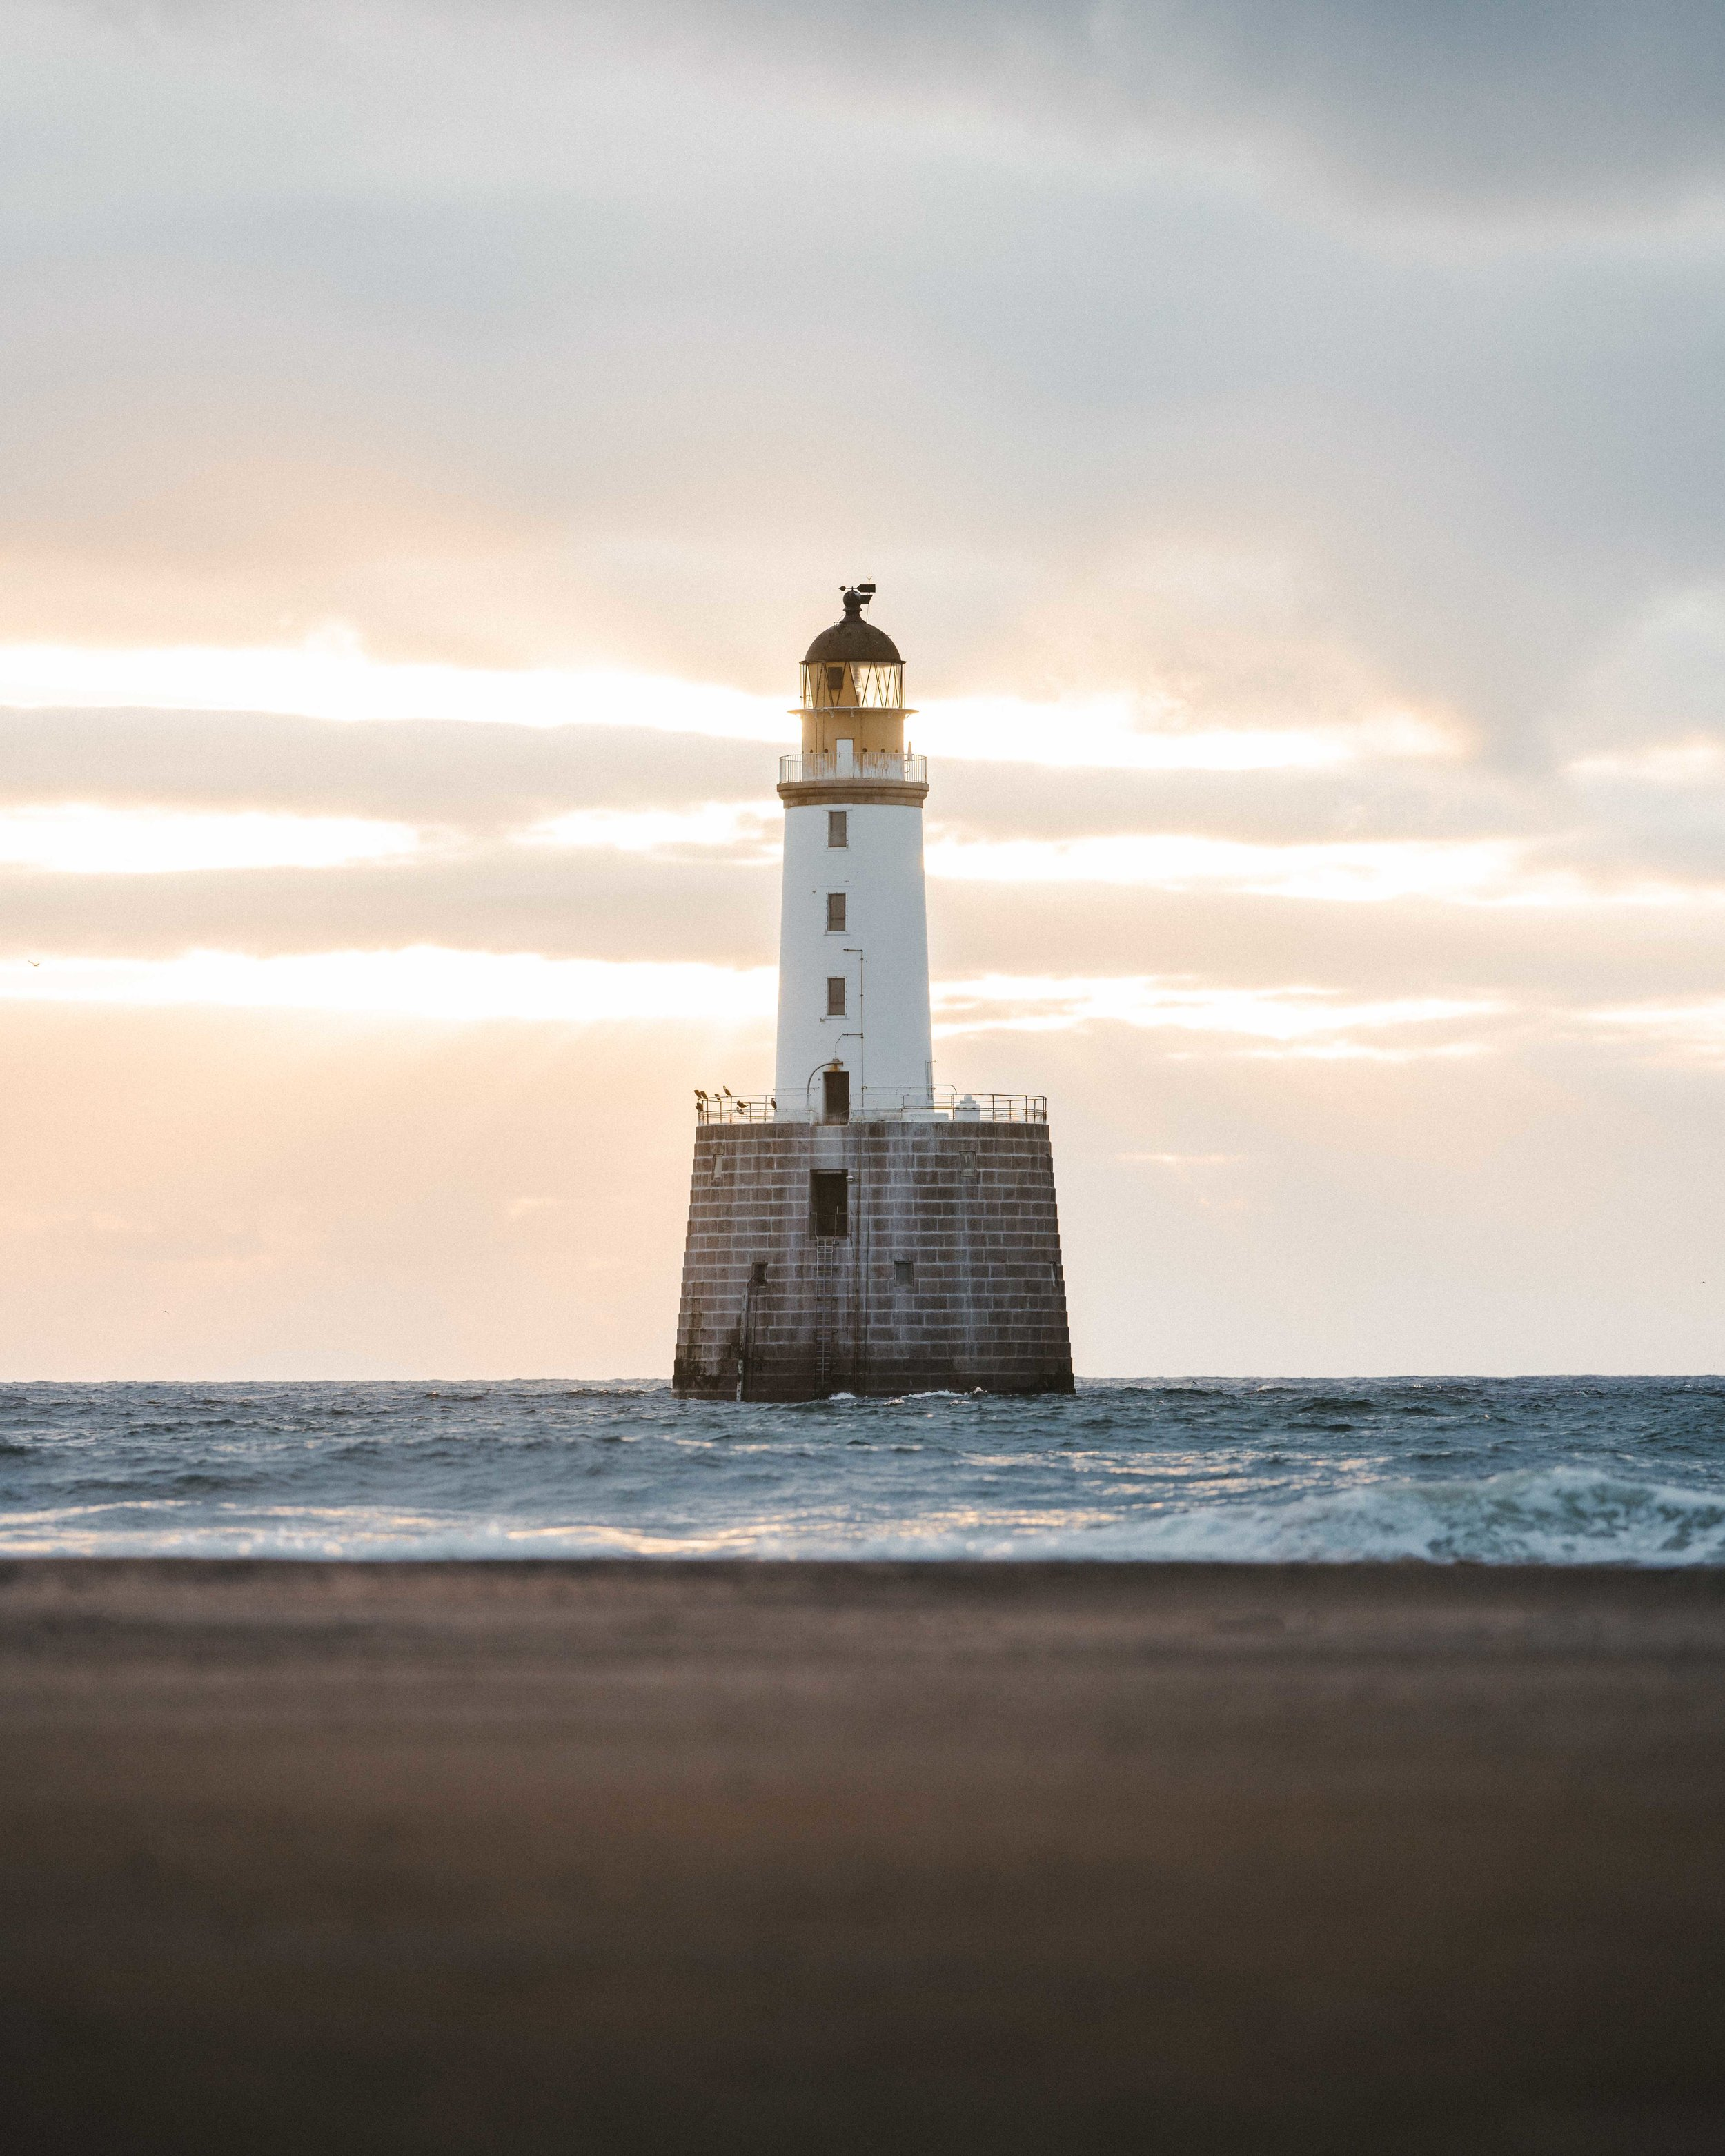 Rattray Head, Scotland. Sony A7Riii @ F1.8 - 1/800 second - 50 ISO.